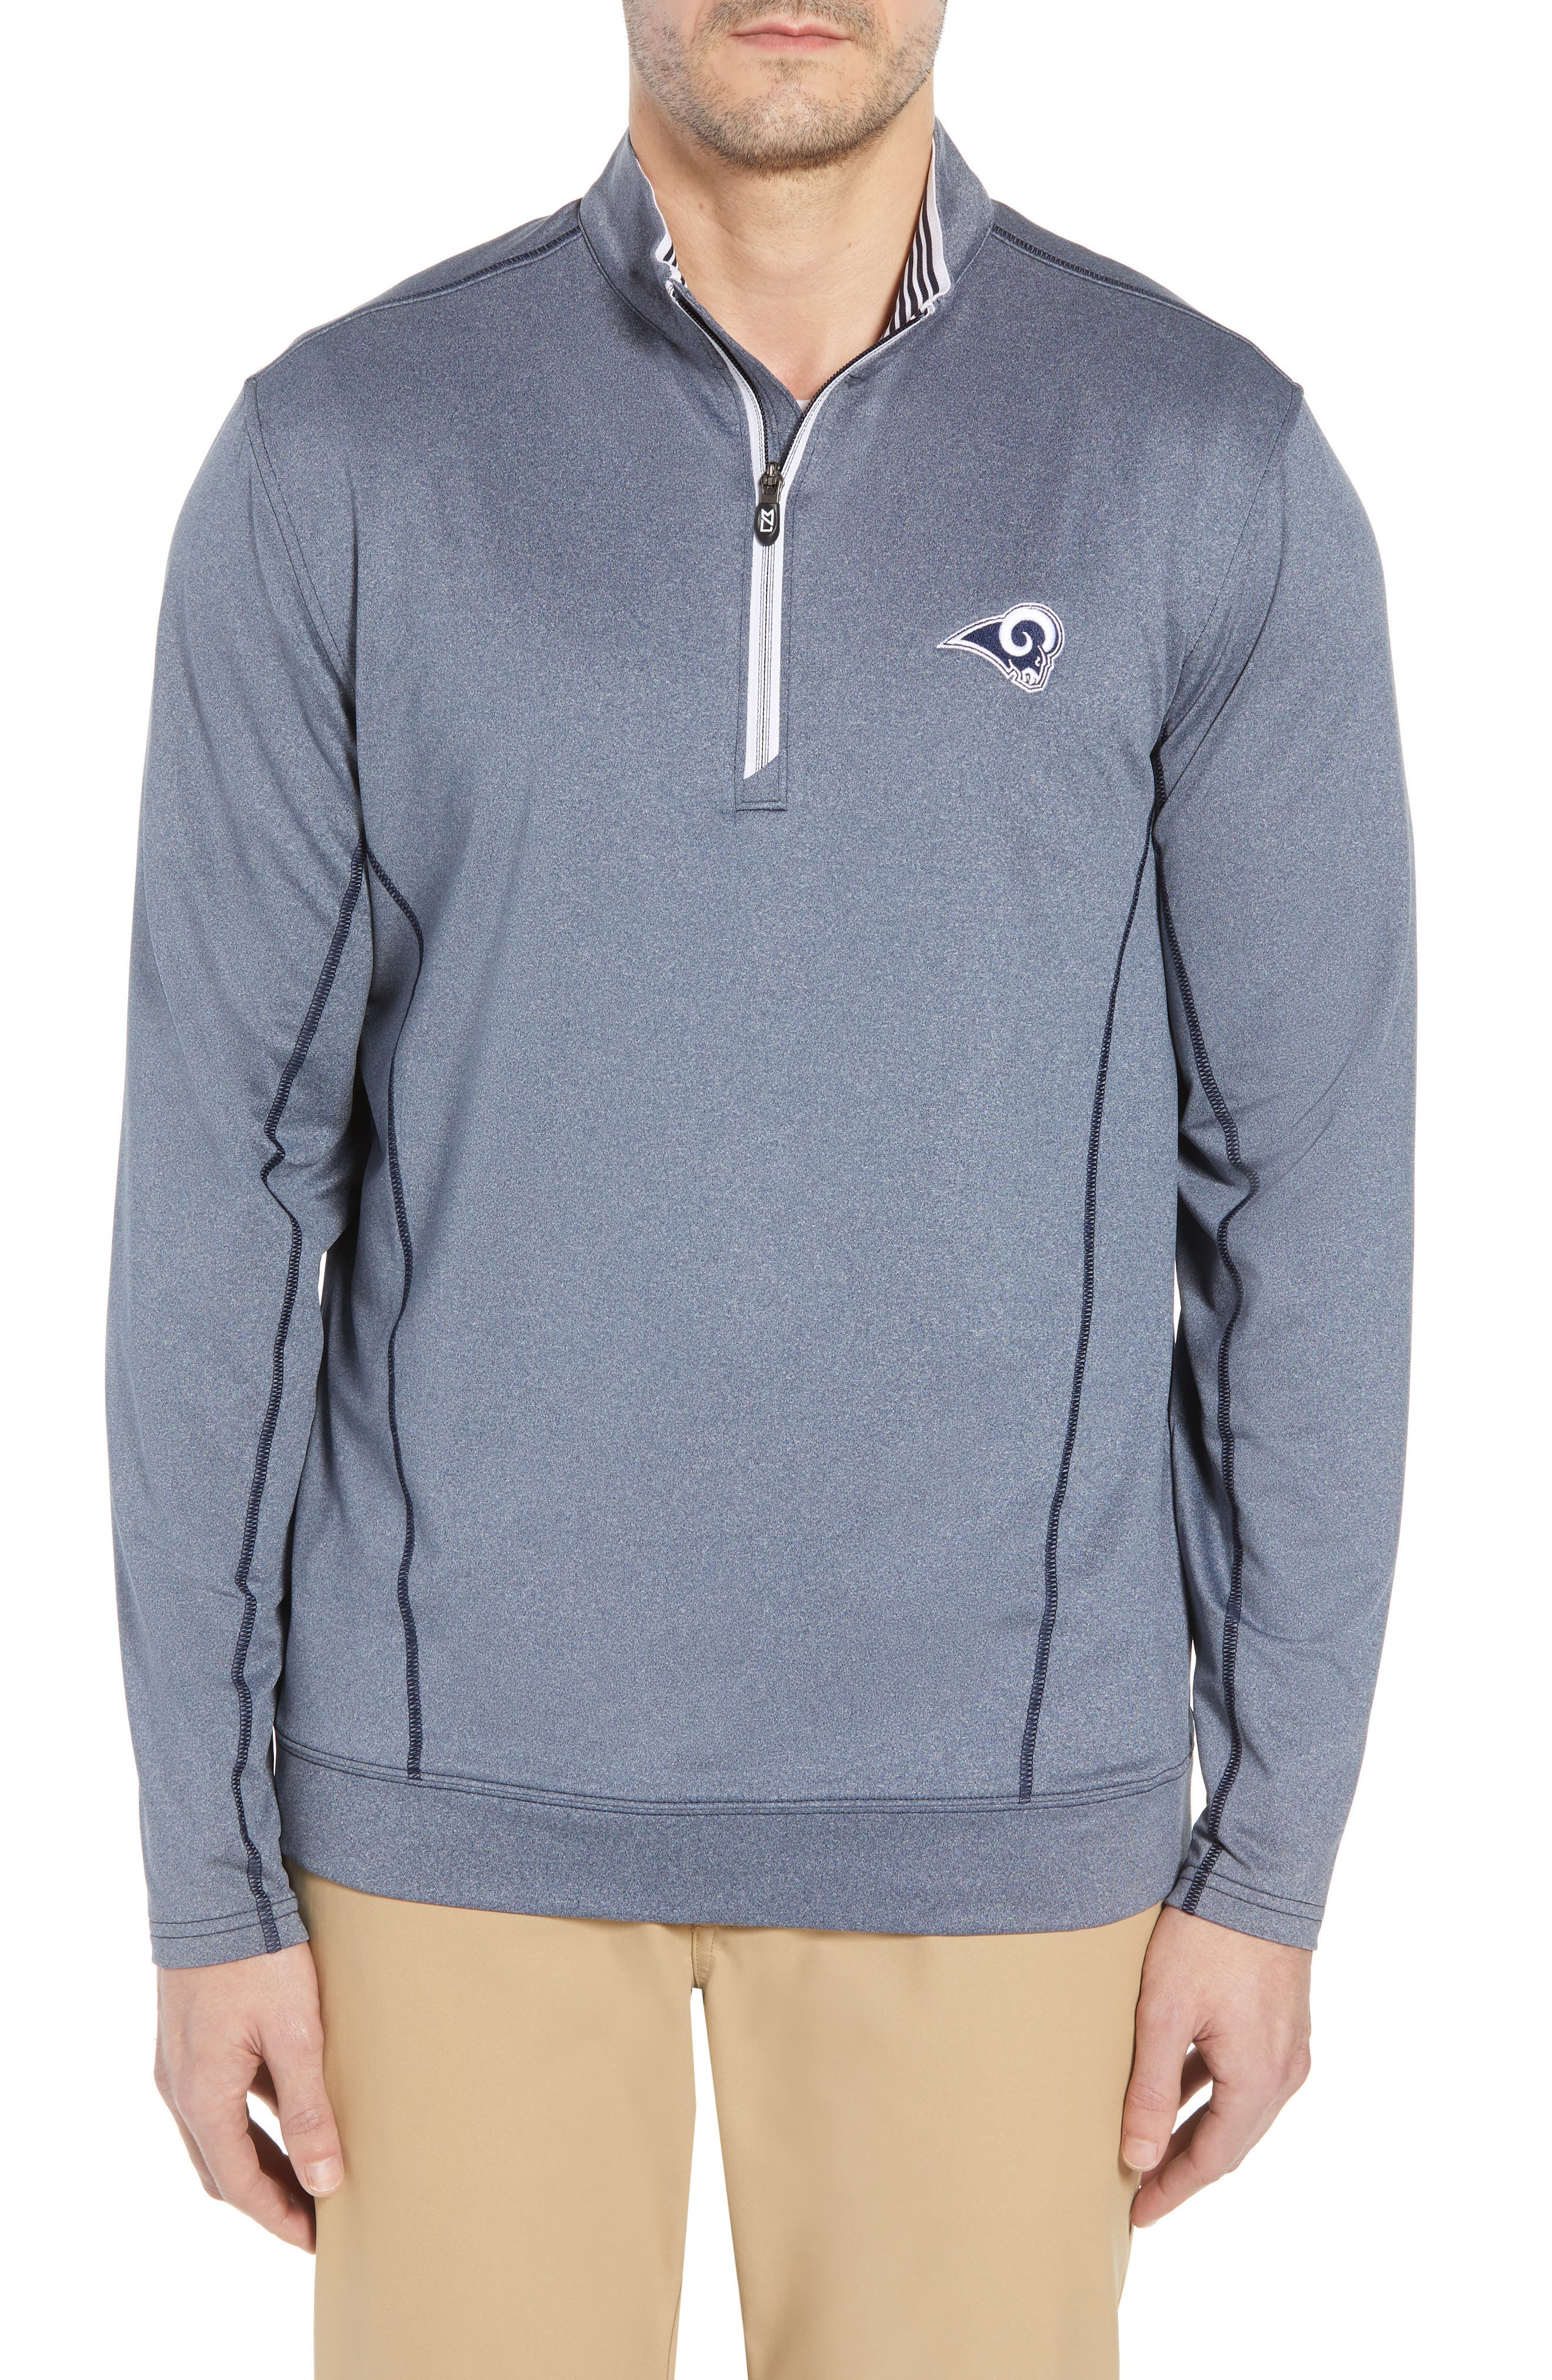 Endurance Los Angeles Rams Regular Fit Pullover,                             Main thumbnail 1, color,                             LIBERTY NAVY HEATHER